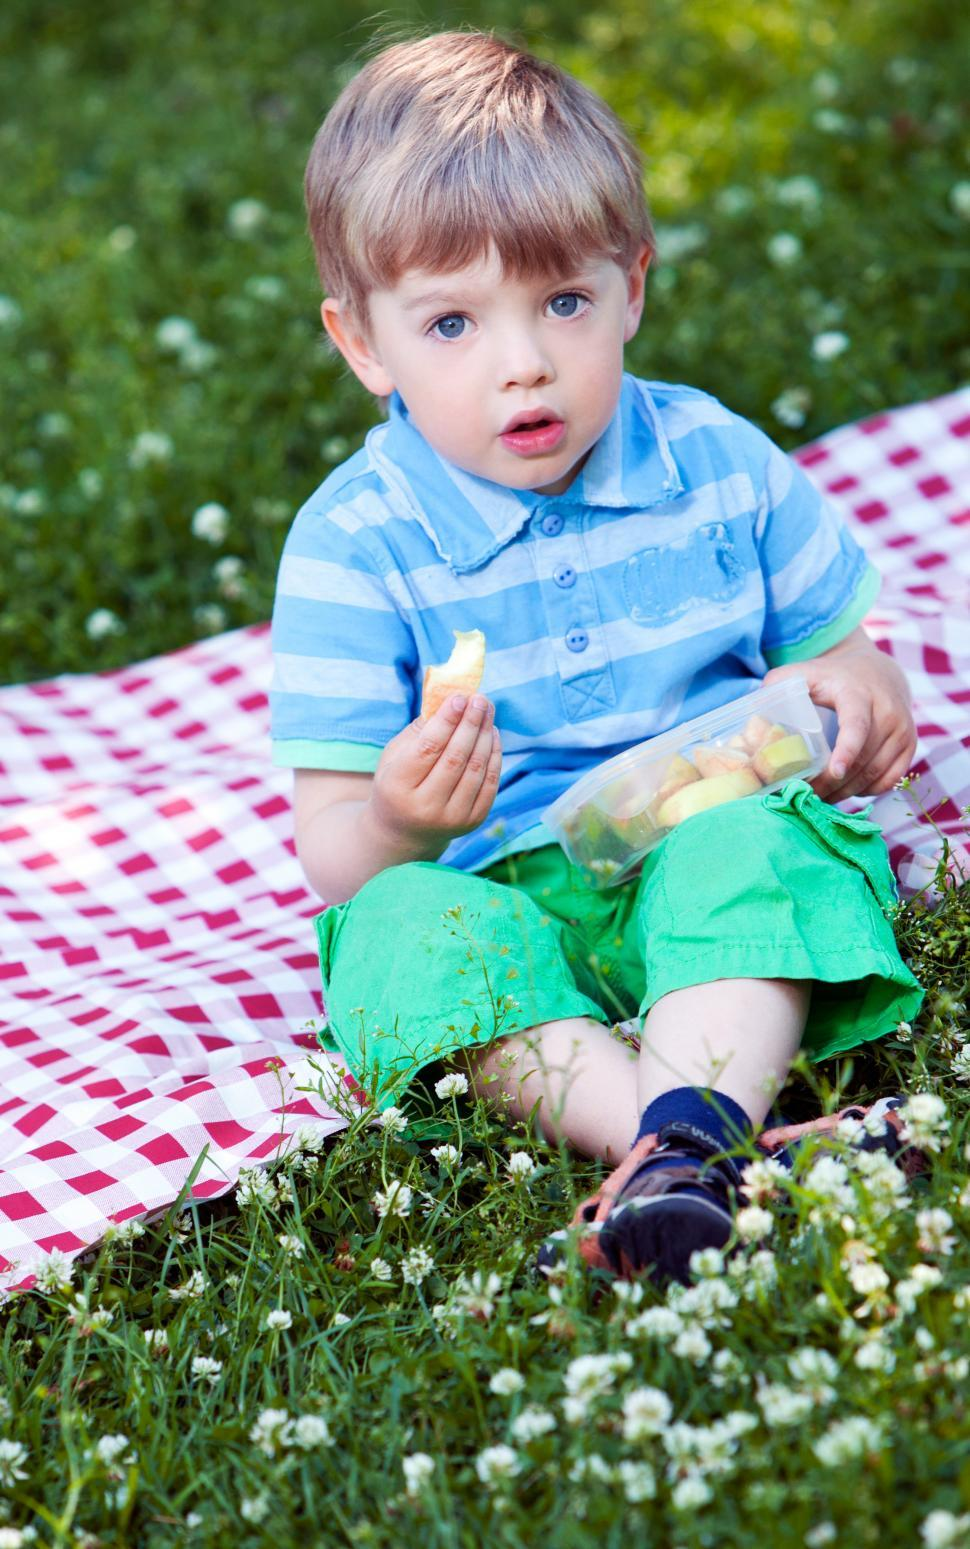 Download Free Stock Photo of Cute little boy at picnic in the park